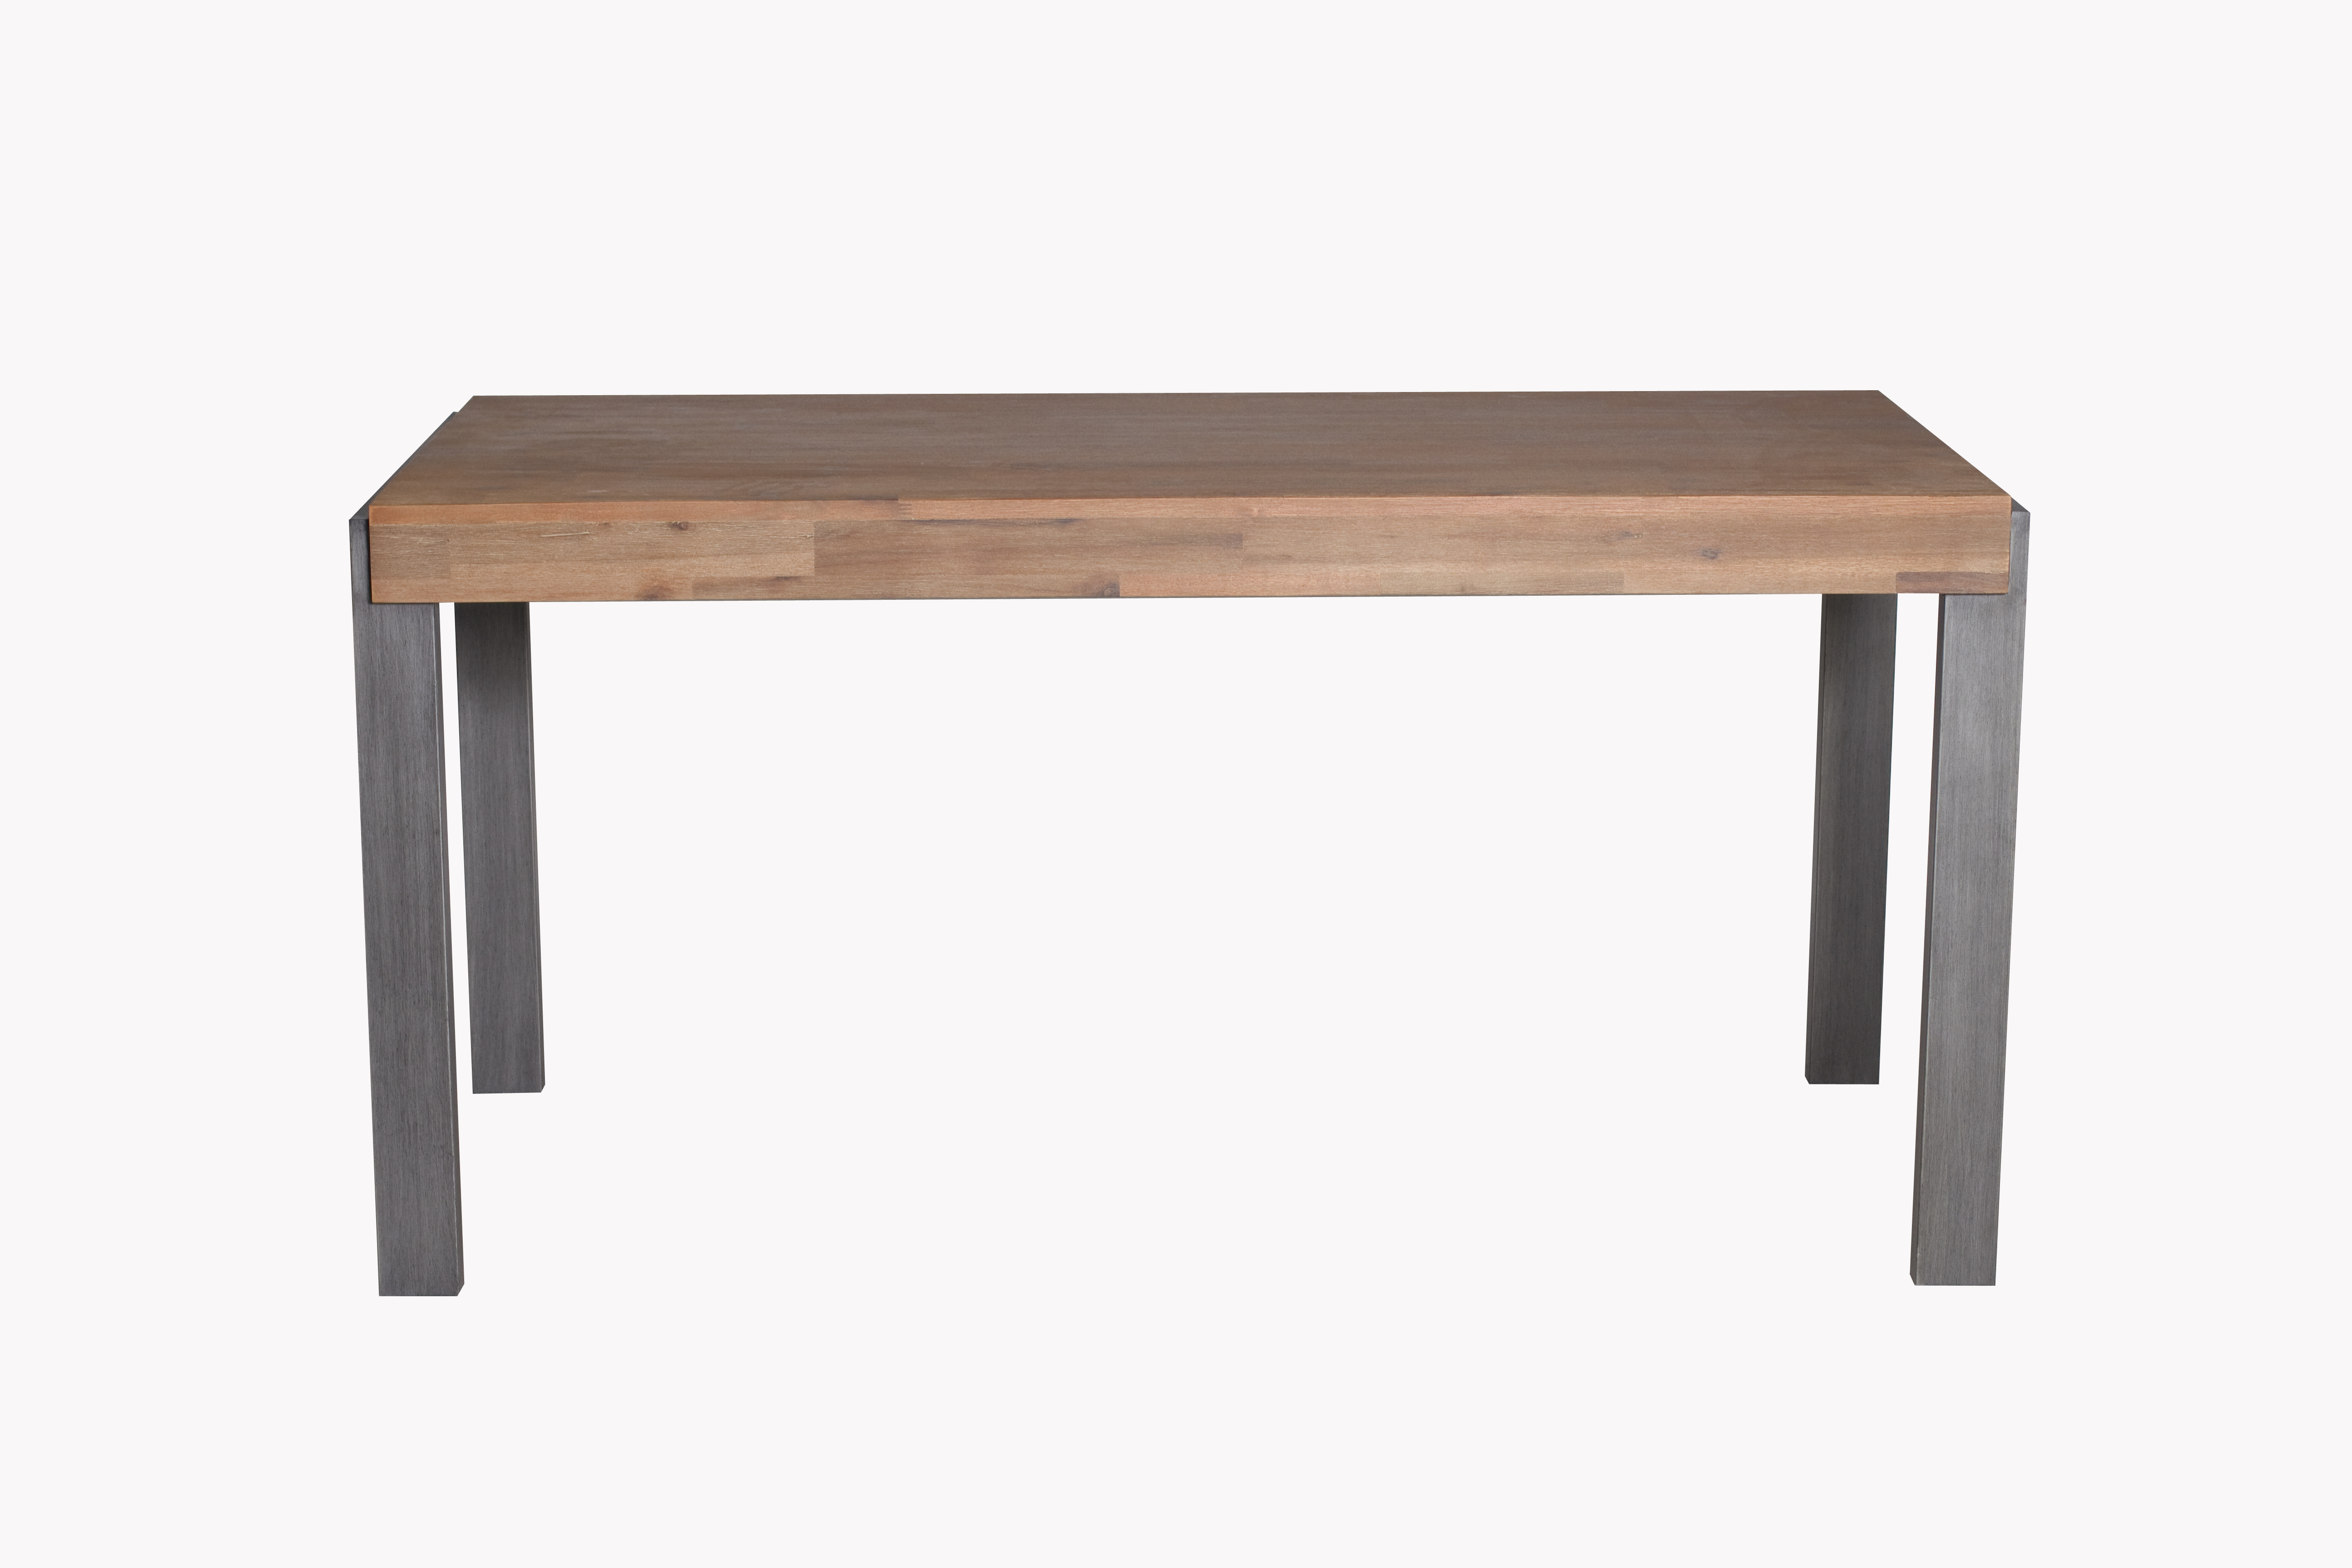 Bilbao Dining Table 1-2